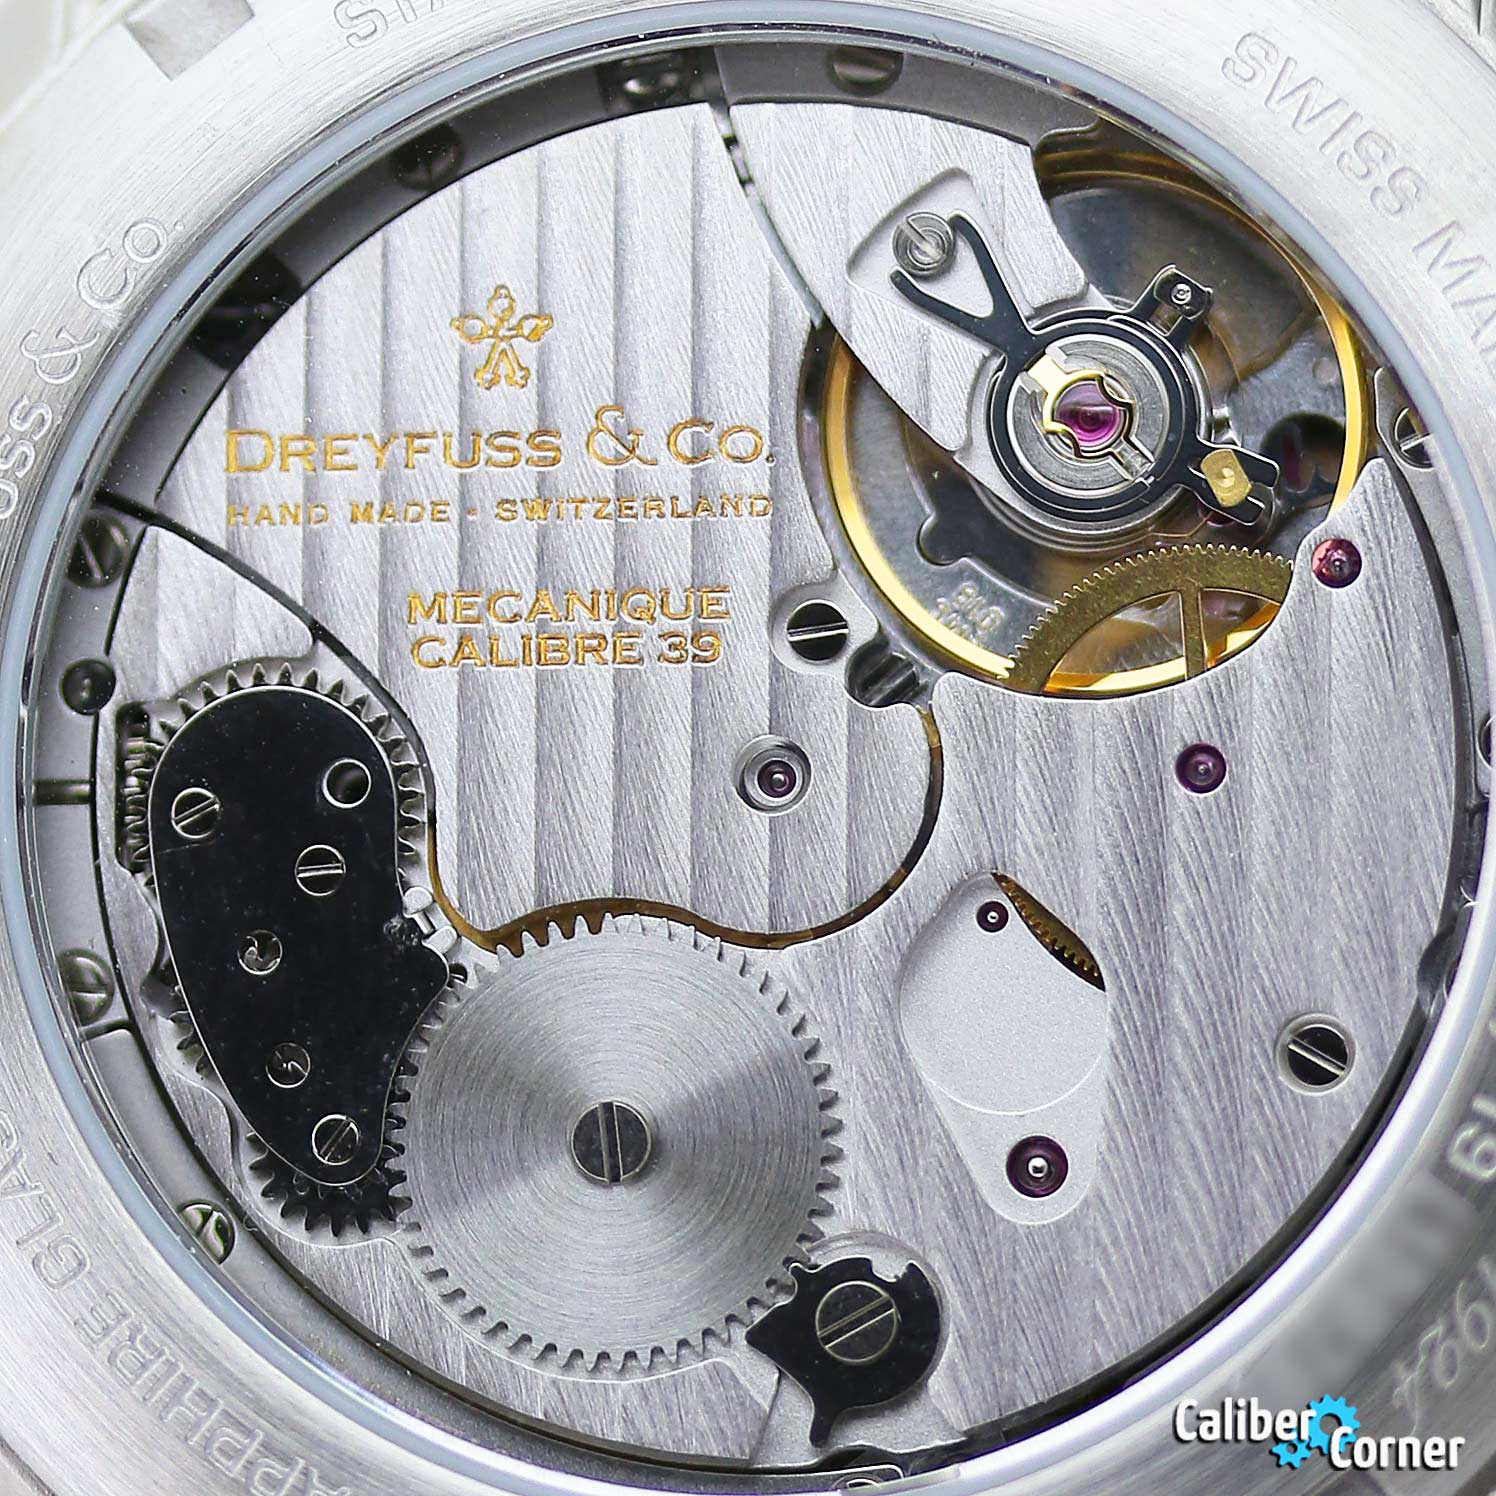 Eterna caliber 39